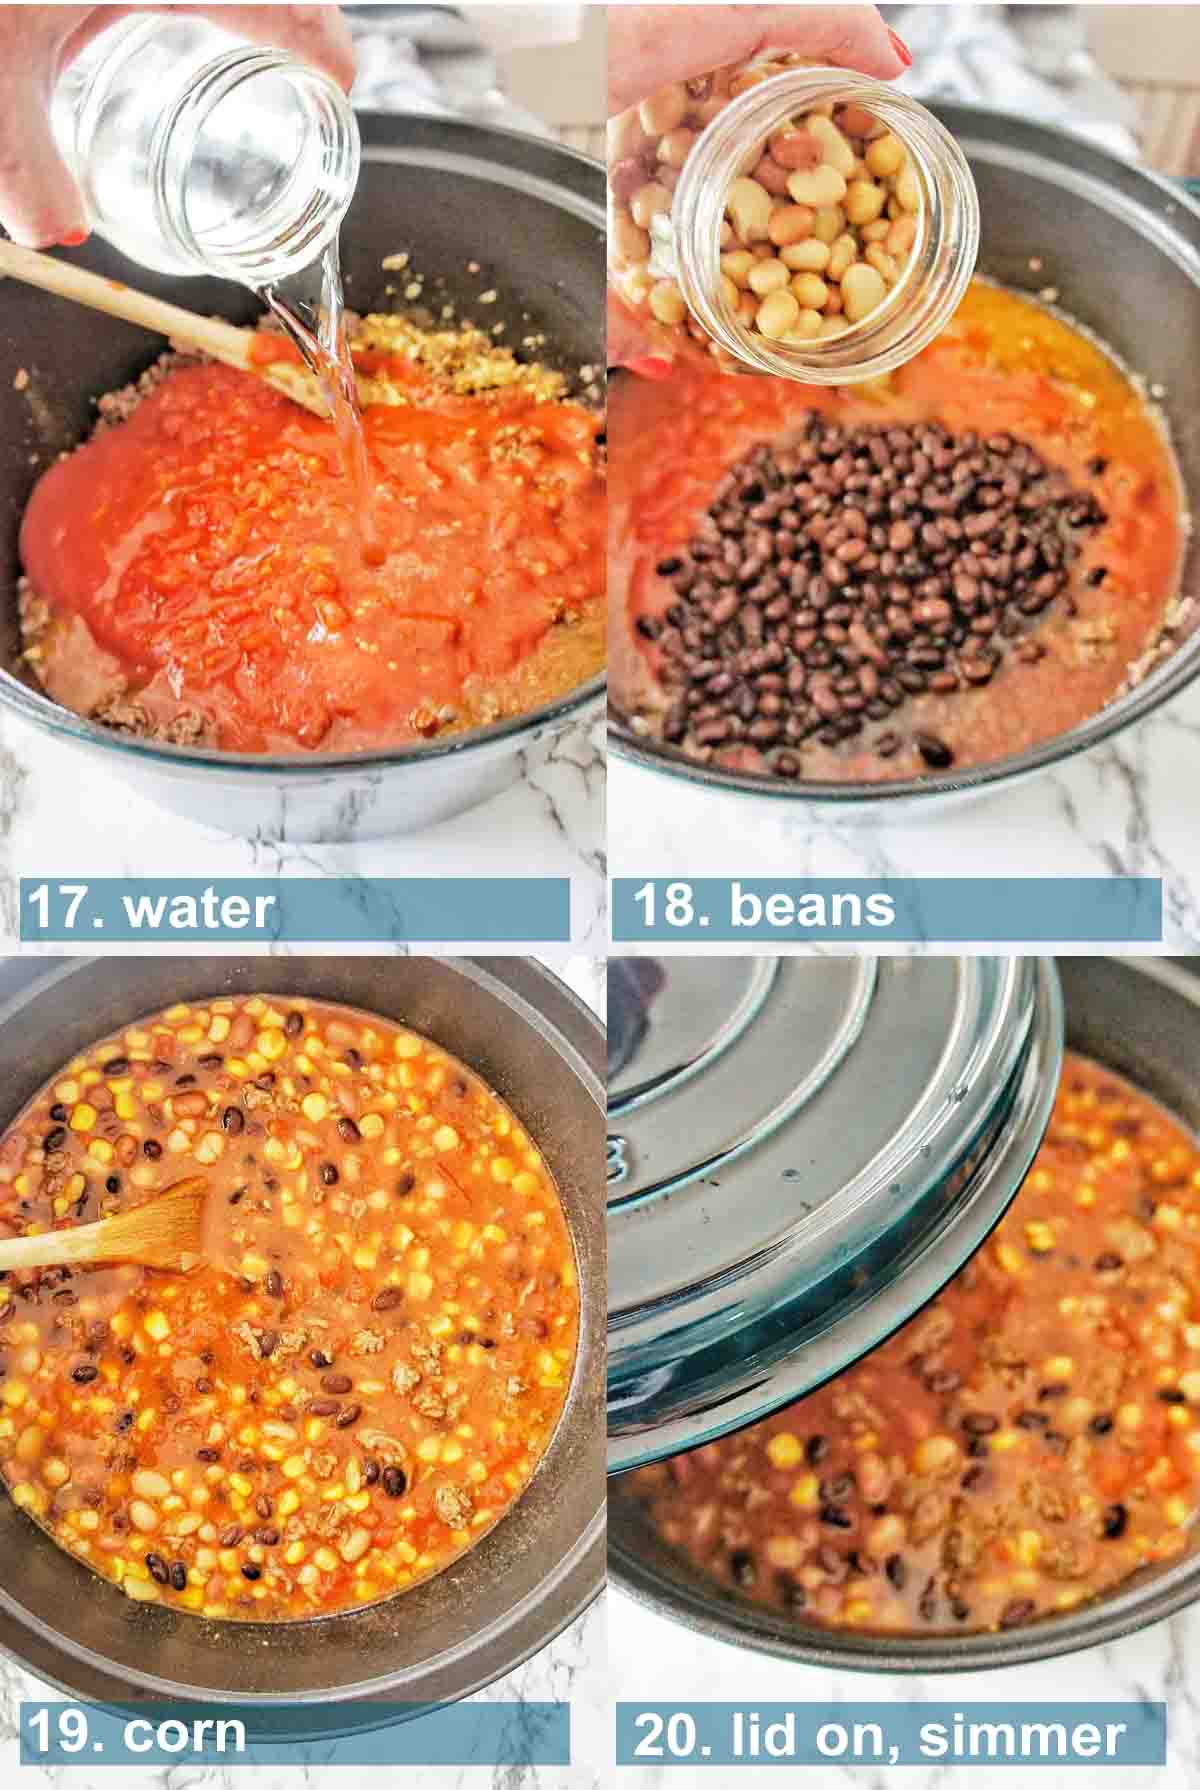 Instructions for making taco soup with text overlay